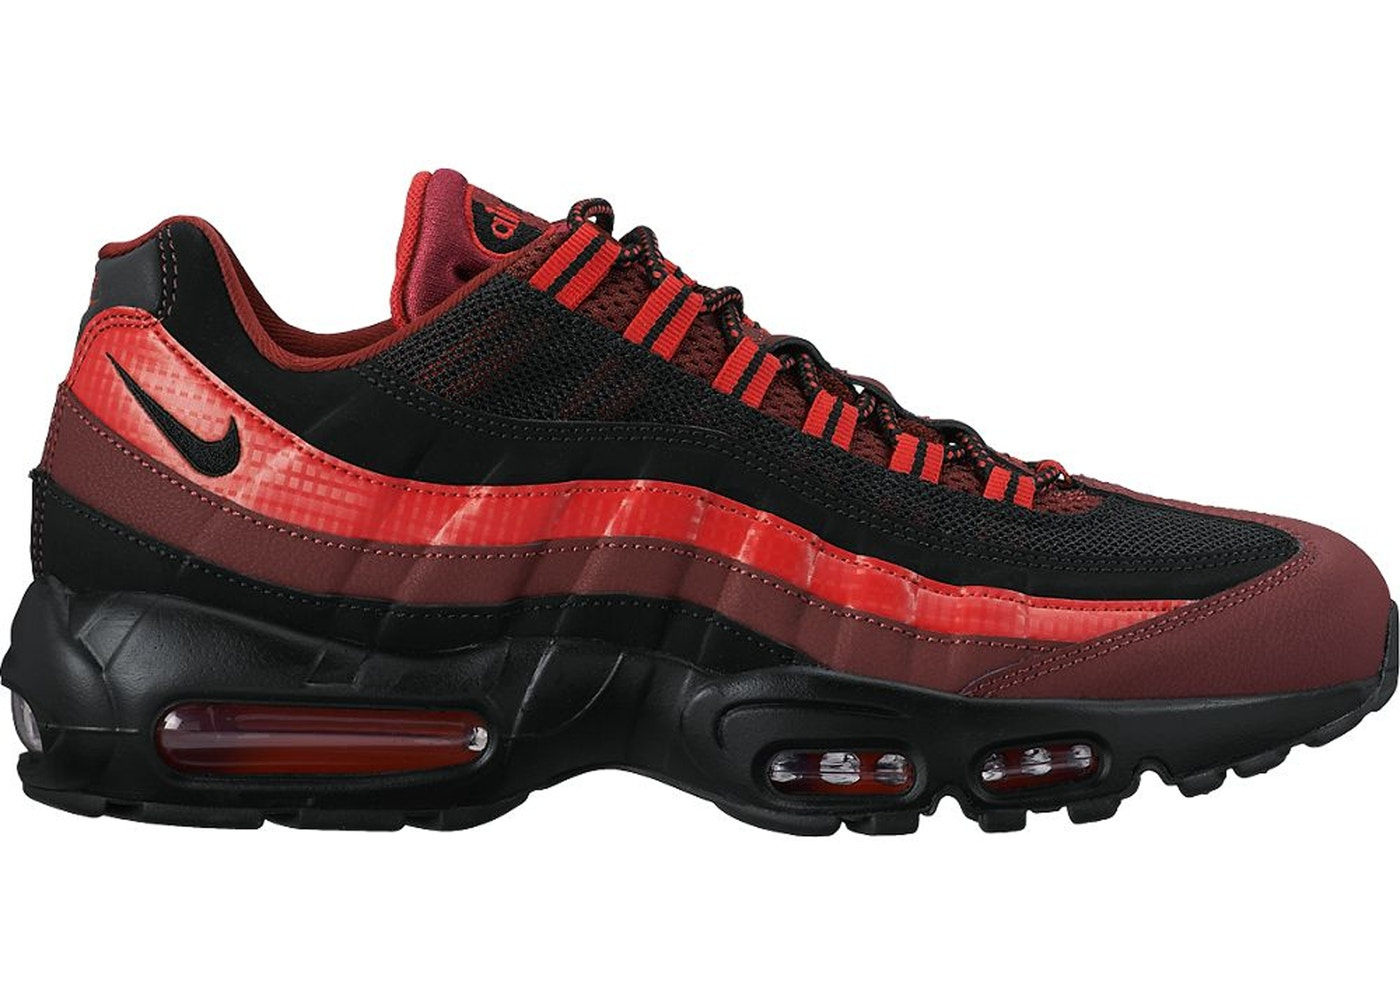 super popular 2b3cb 73be2 Air Max 95 Team Red Black Uni Red - 749766-600